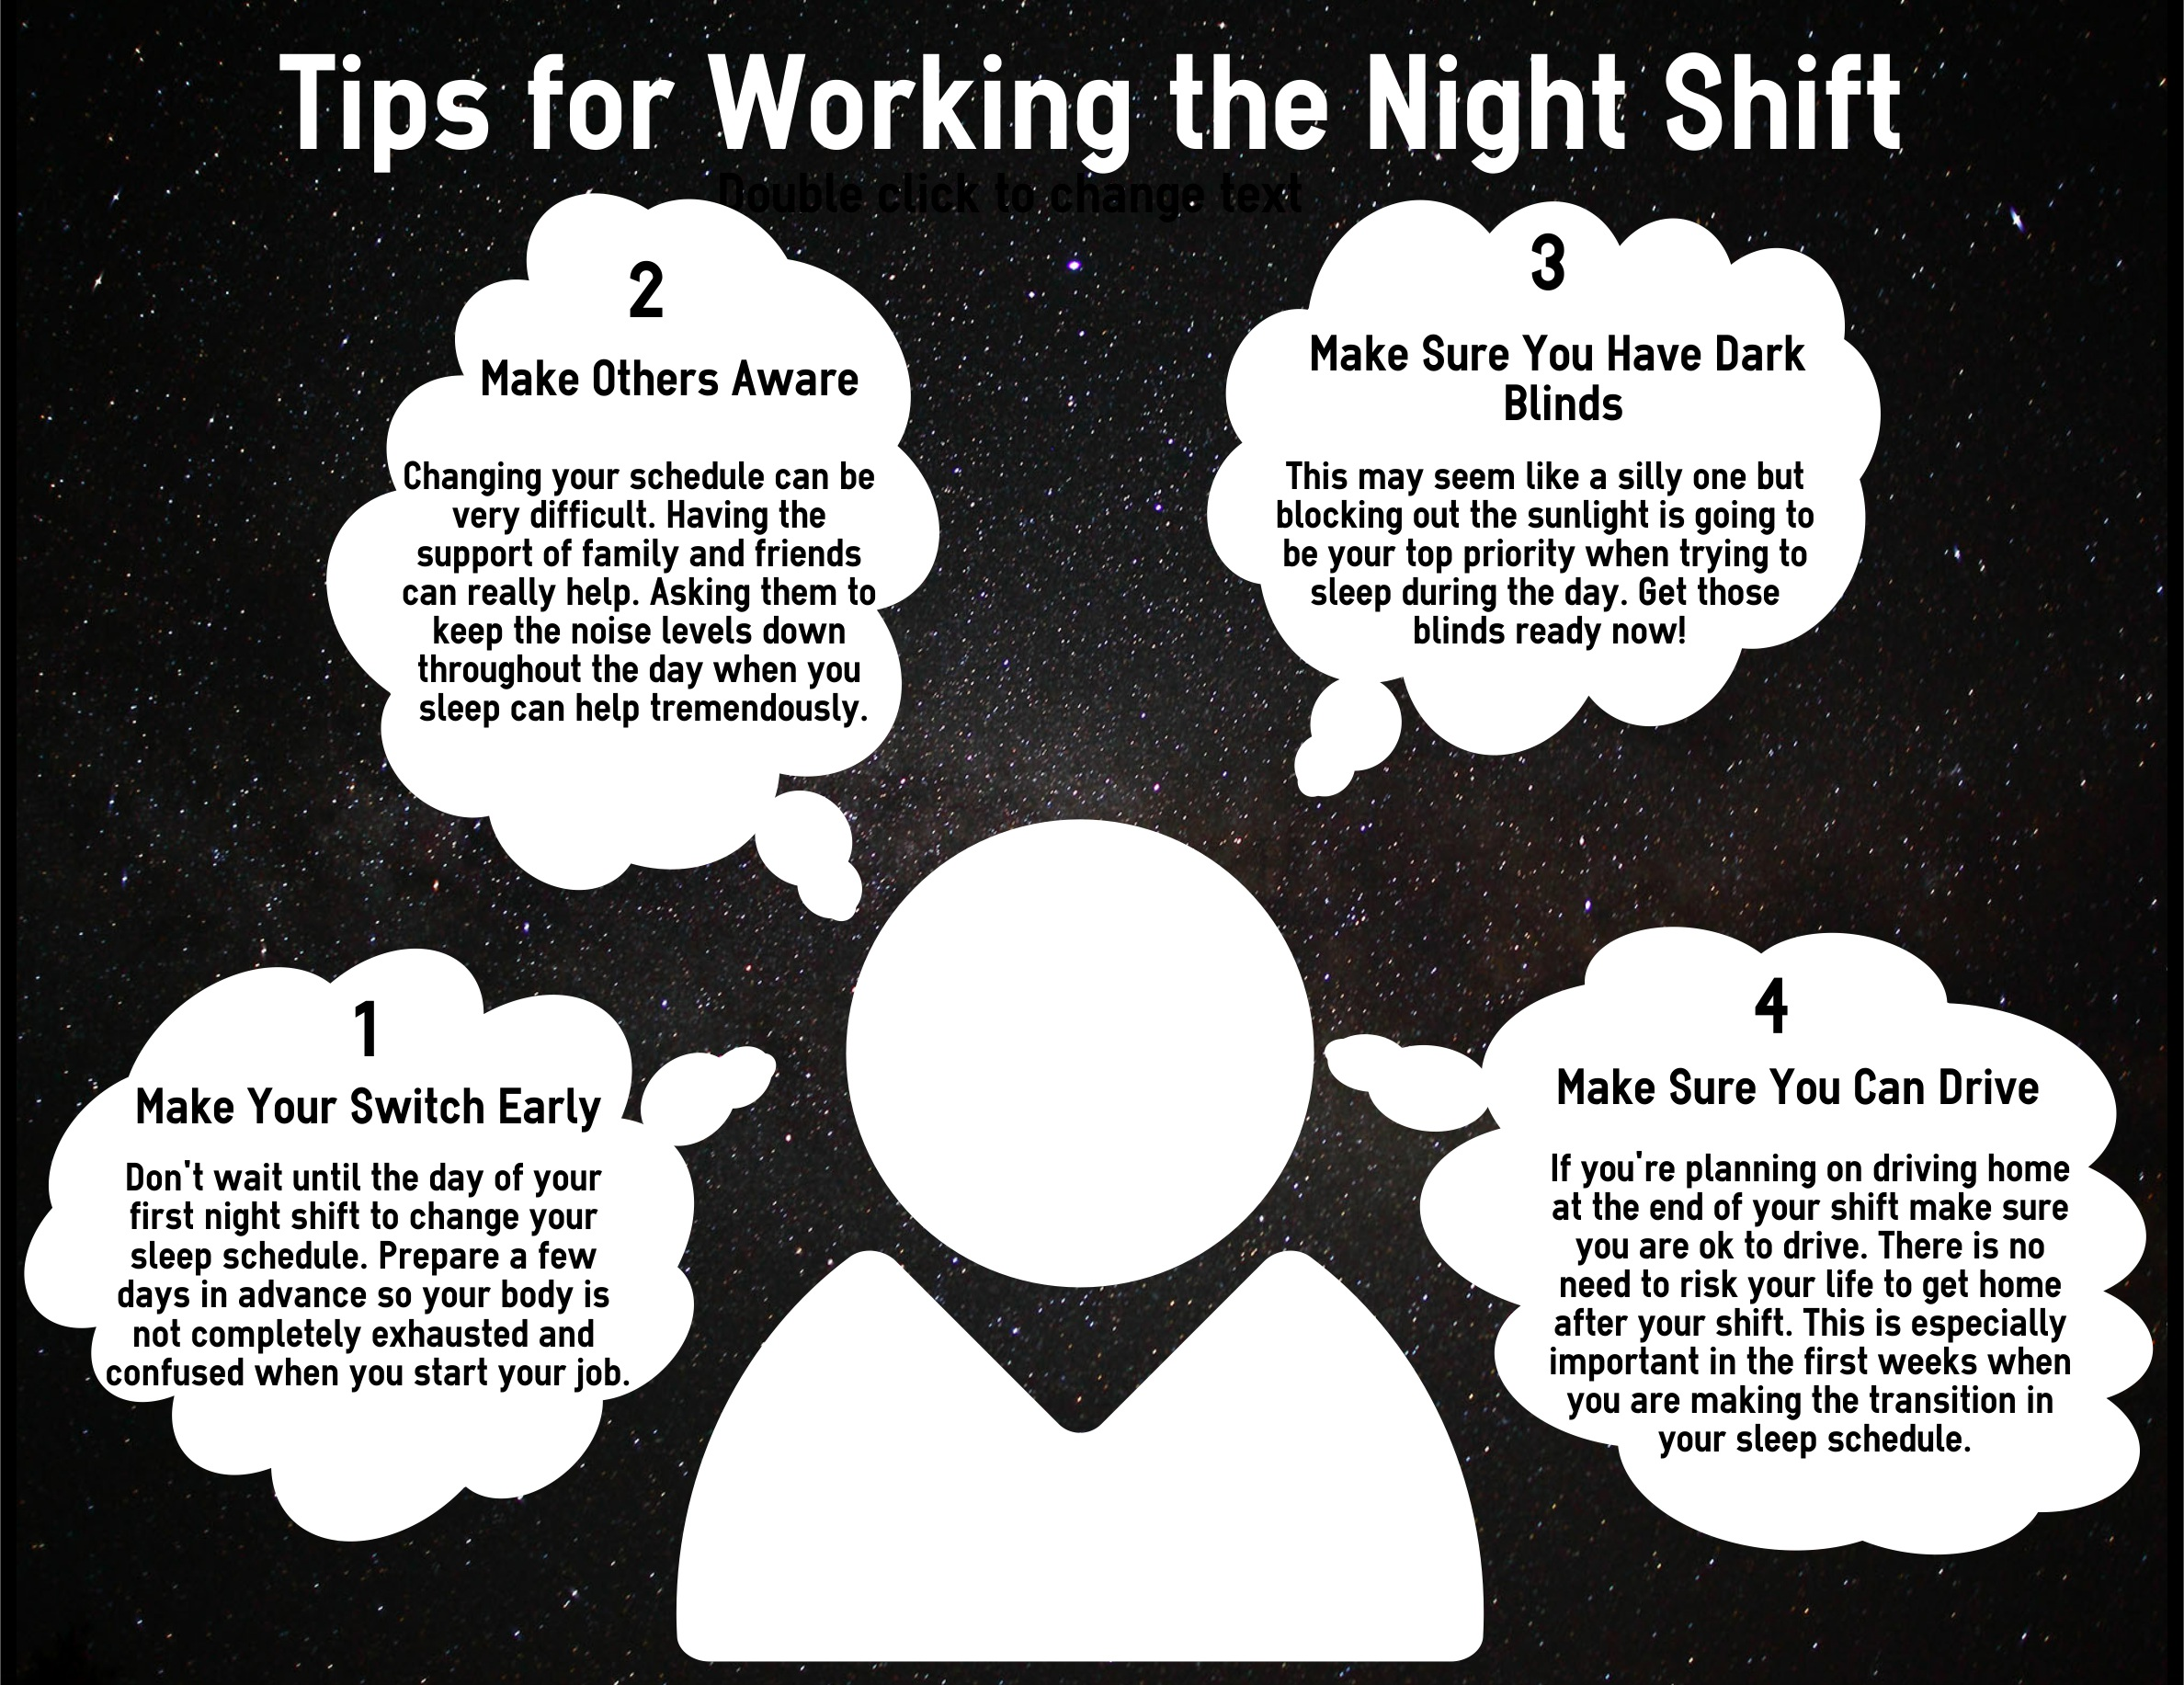 Your sleep and work schedule to accommodate your new shift time